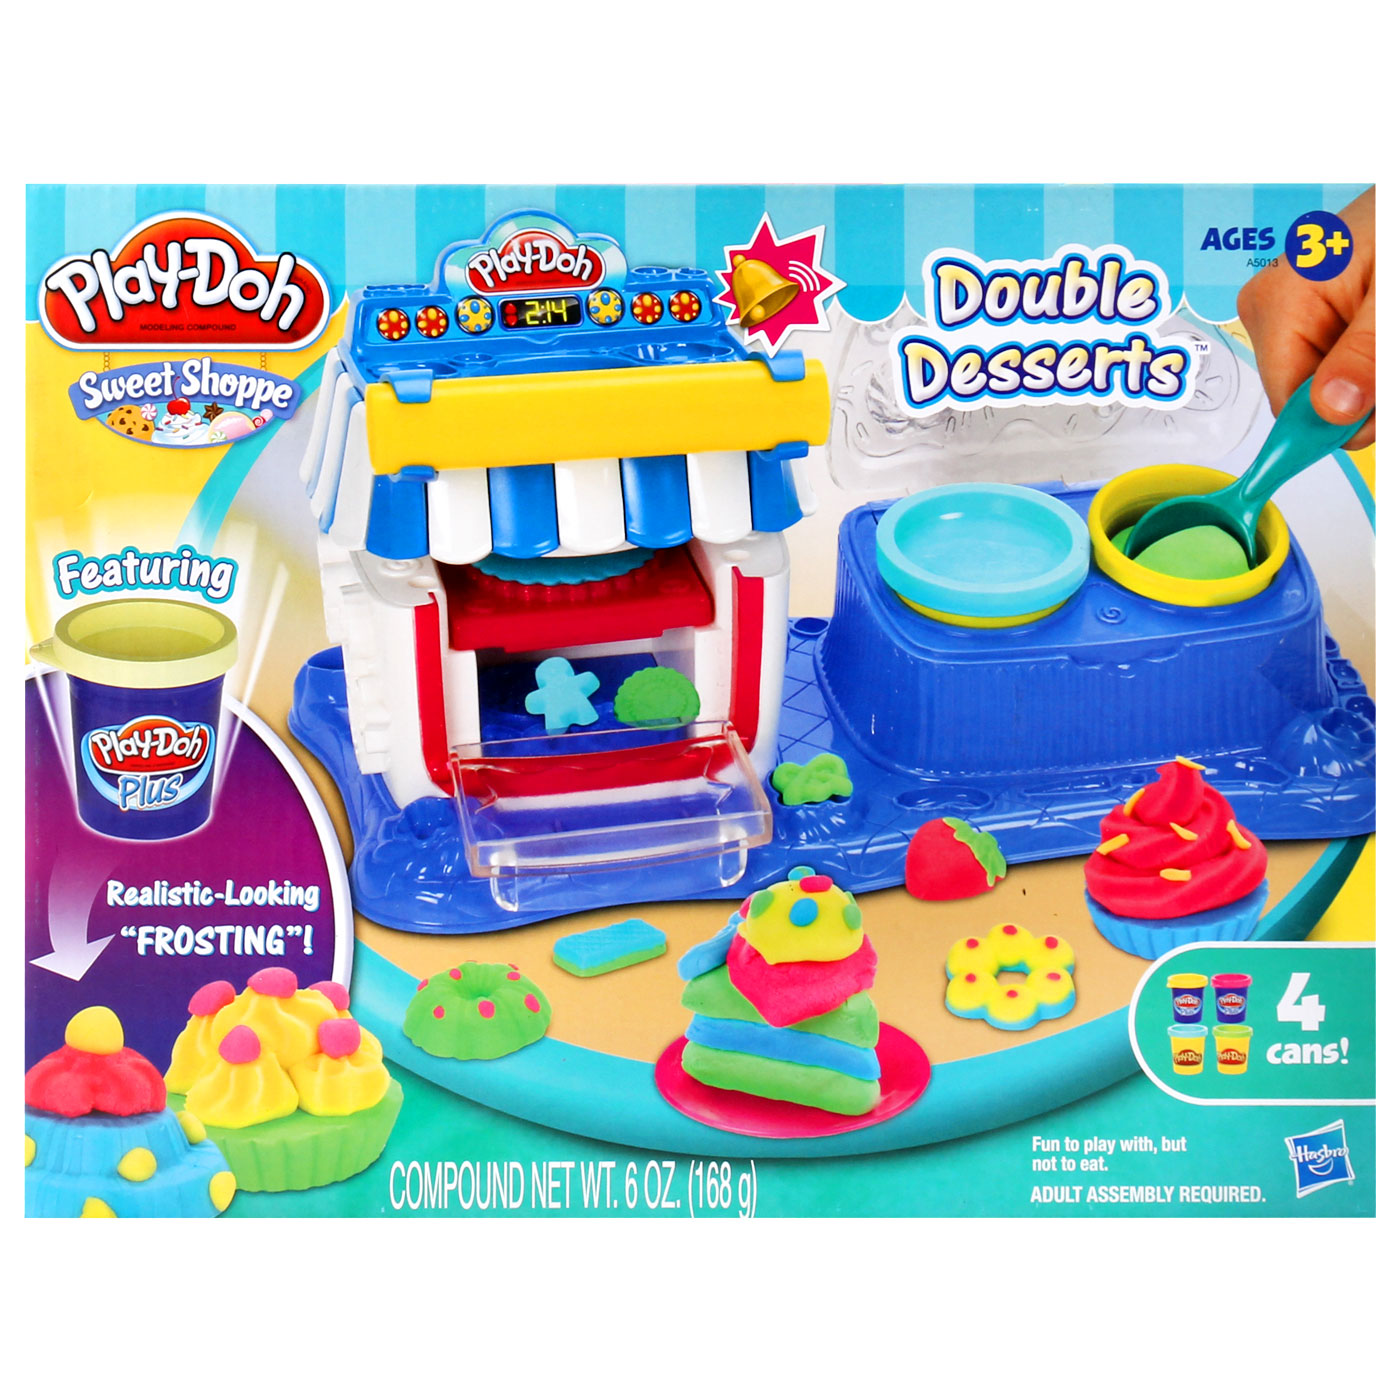 Play-Doh Double Desserts